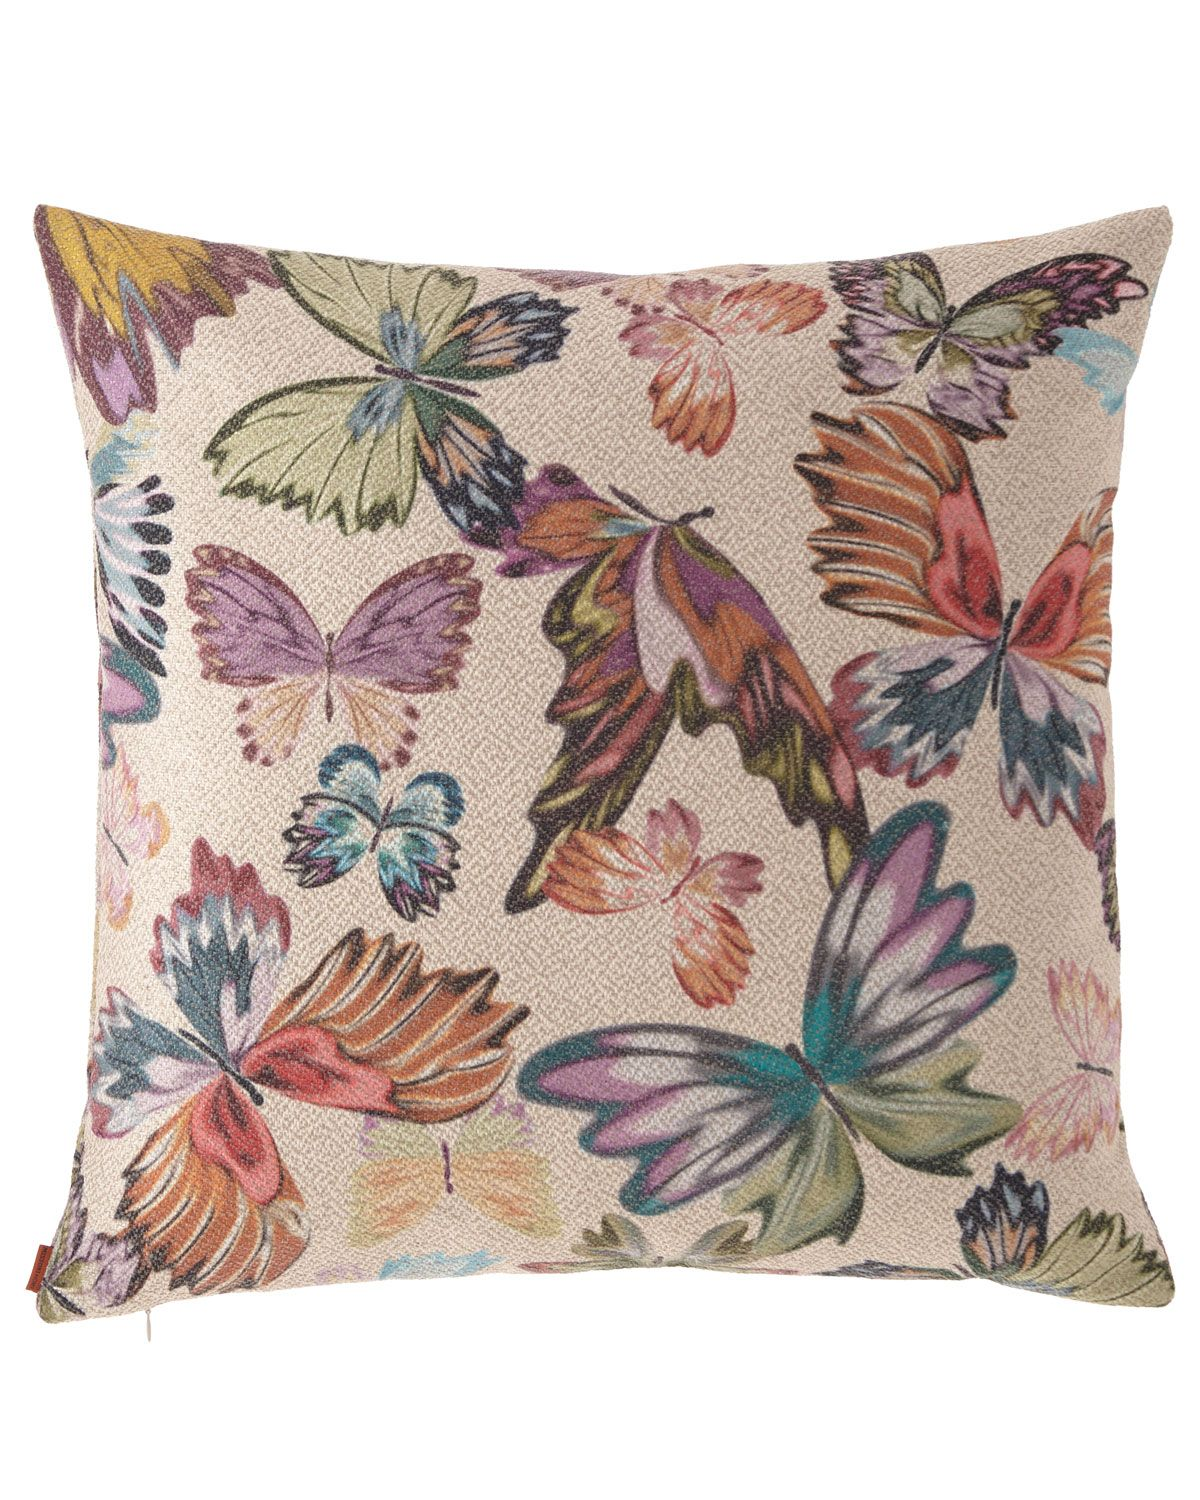 Missoni Home Vientiane Butterfly Jacquard Pillow 24 Sq Pillows